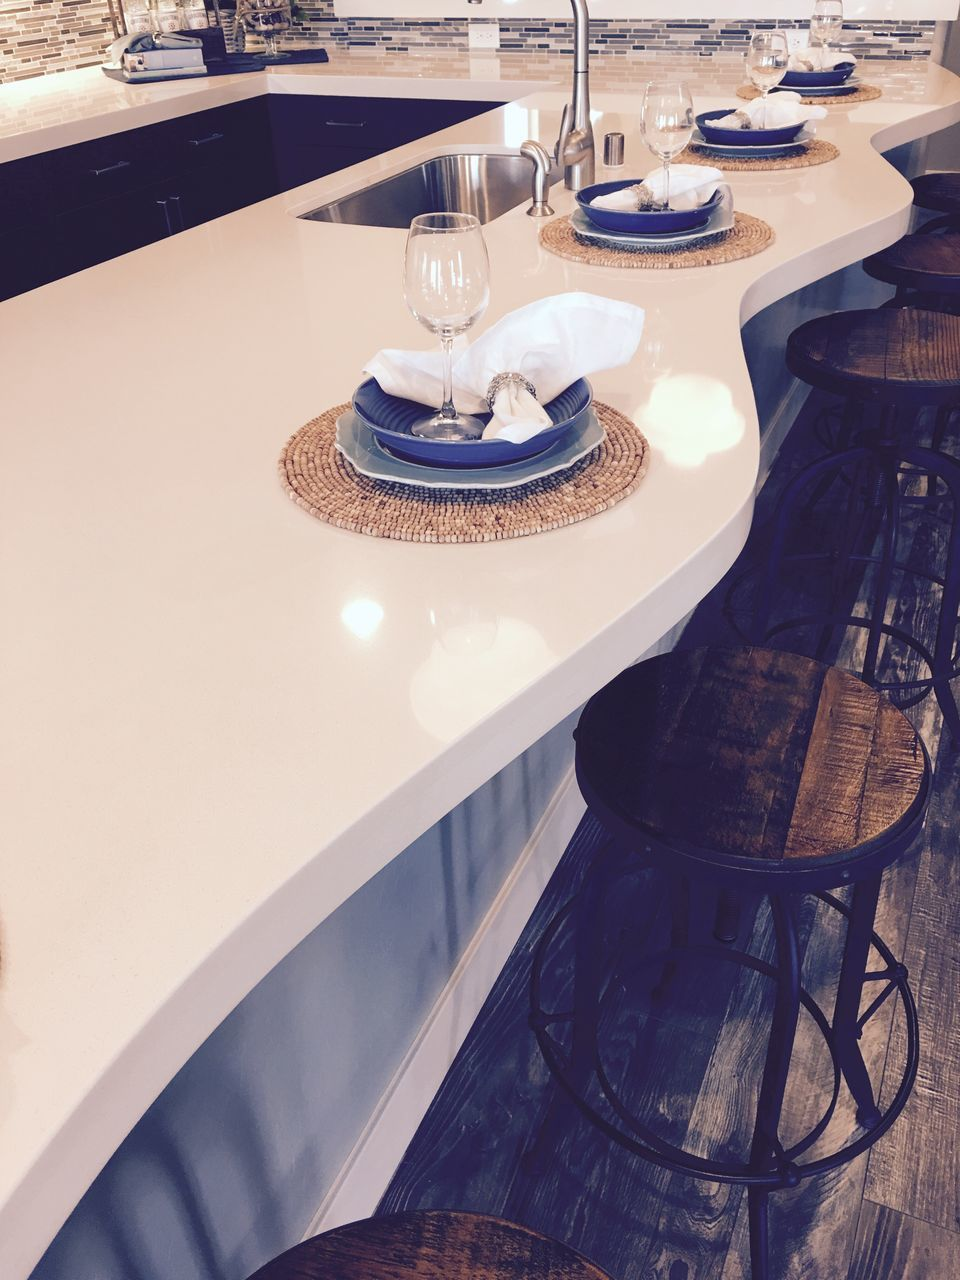 table, plate, place setting, restaurant, chair, dining table, food and drink, indoors, no people, tablecloth, cafe, wineglass, drinking glass, fork, napkin, food and drink industry, food, drink, day